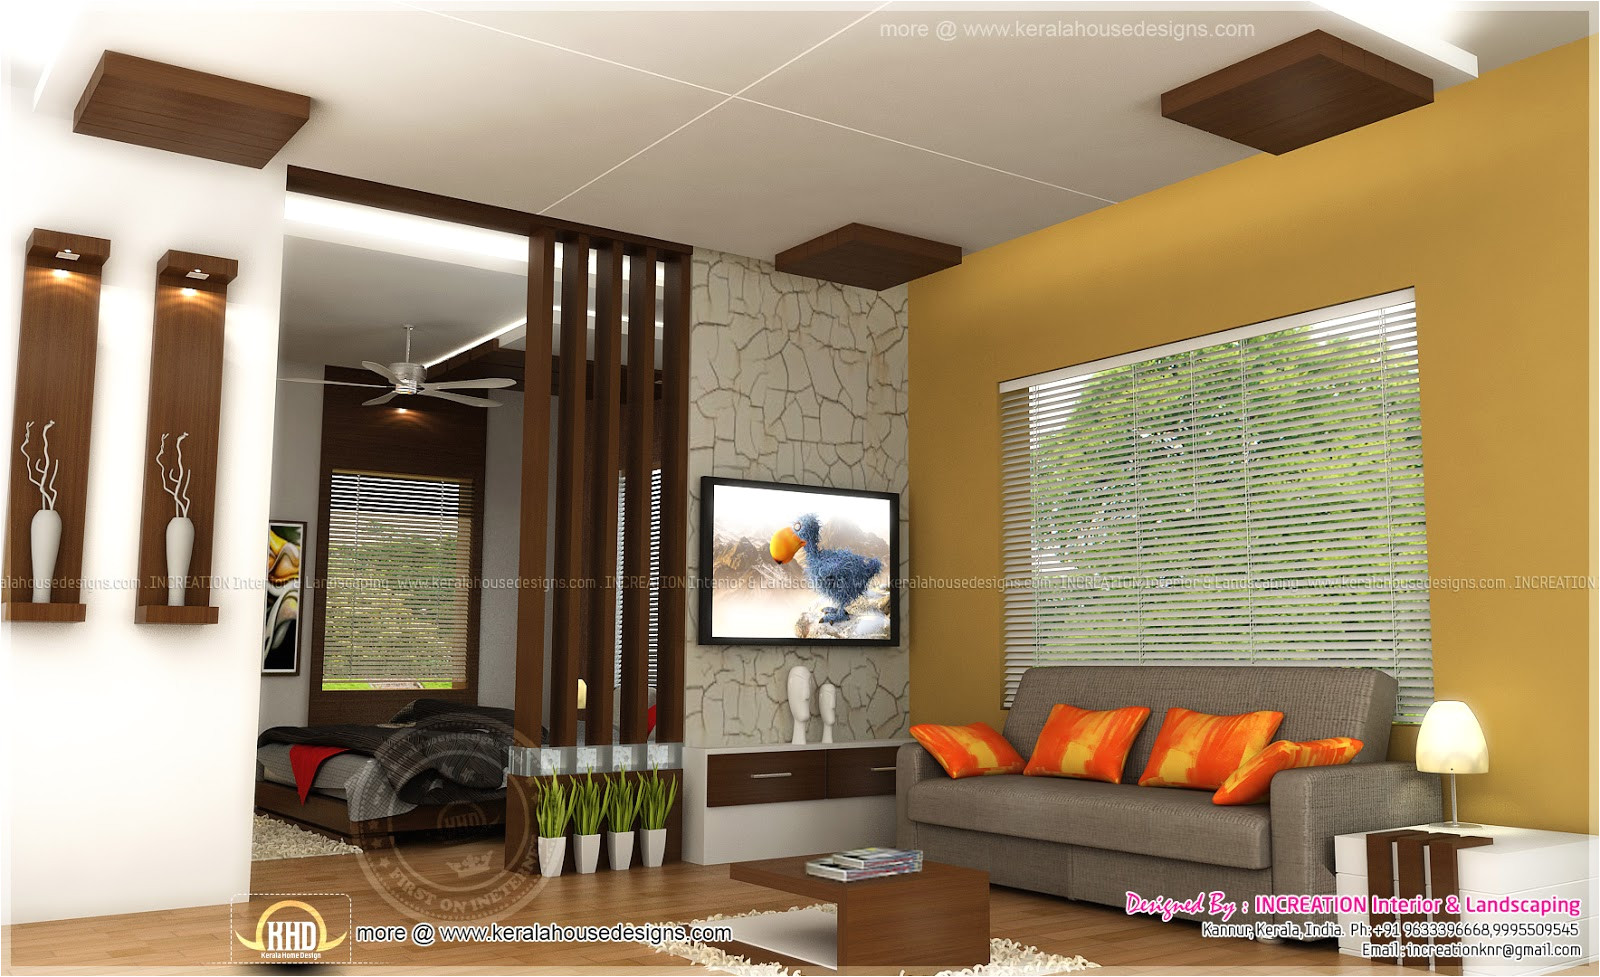 Home Plans with Pictures Of Interior Interior Designs From Kannur Kerala Kerala Home Design